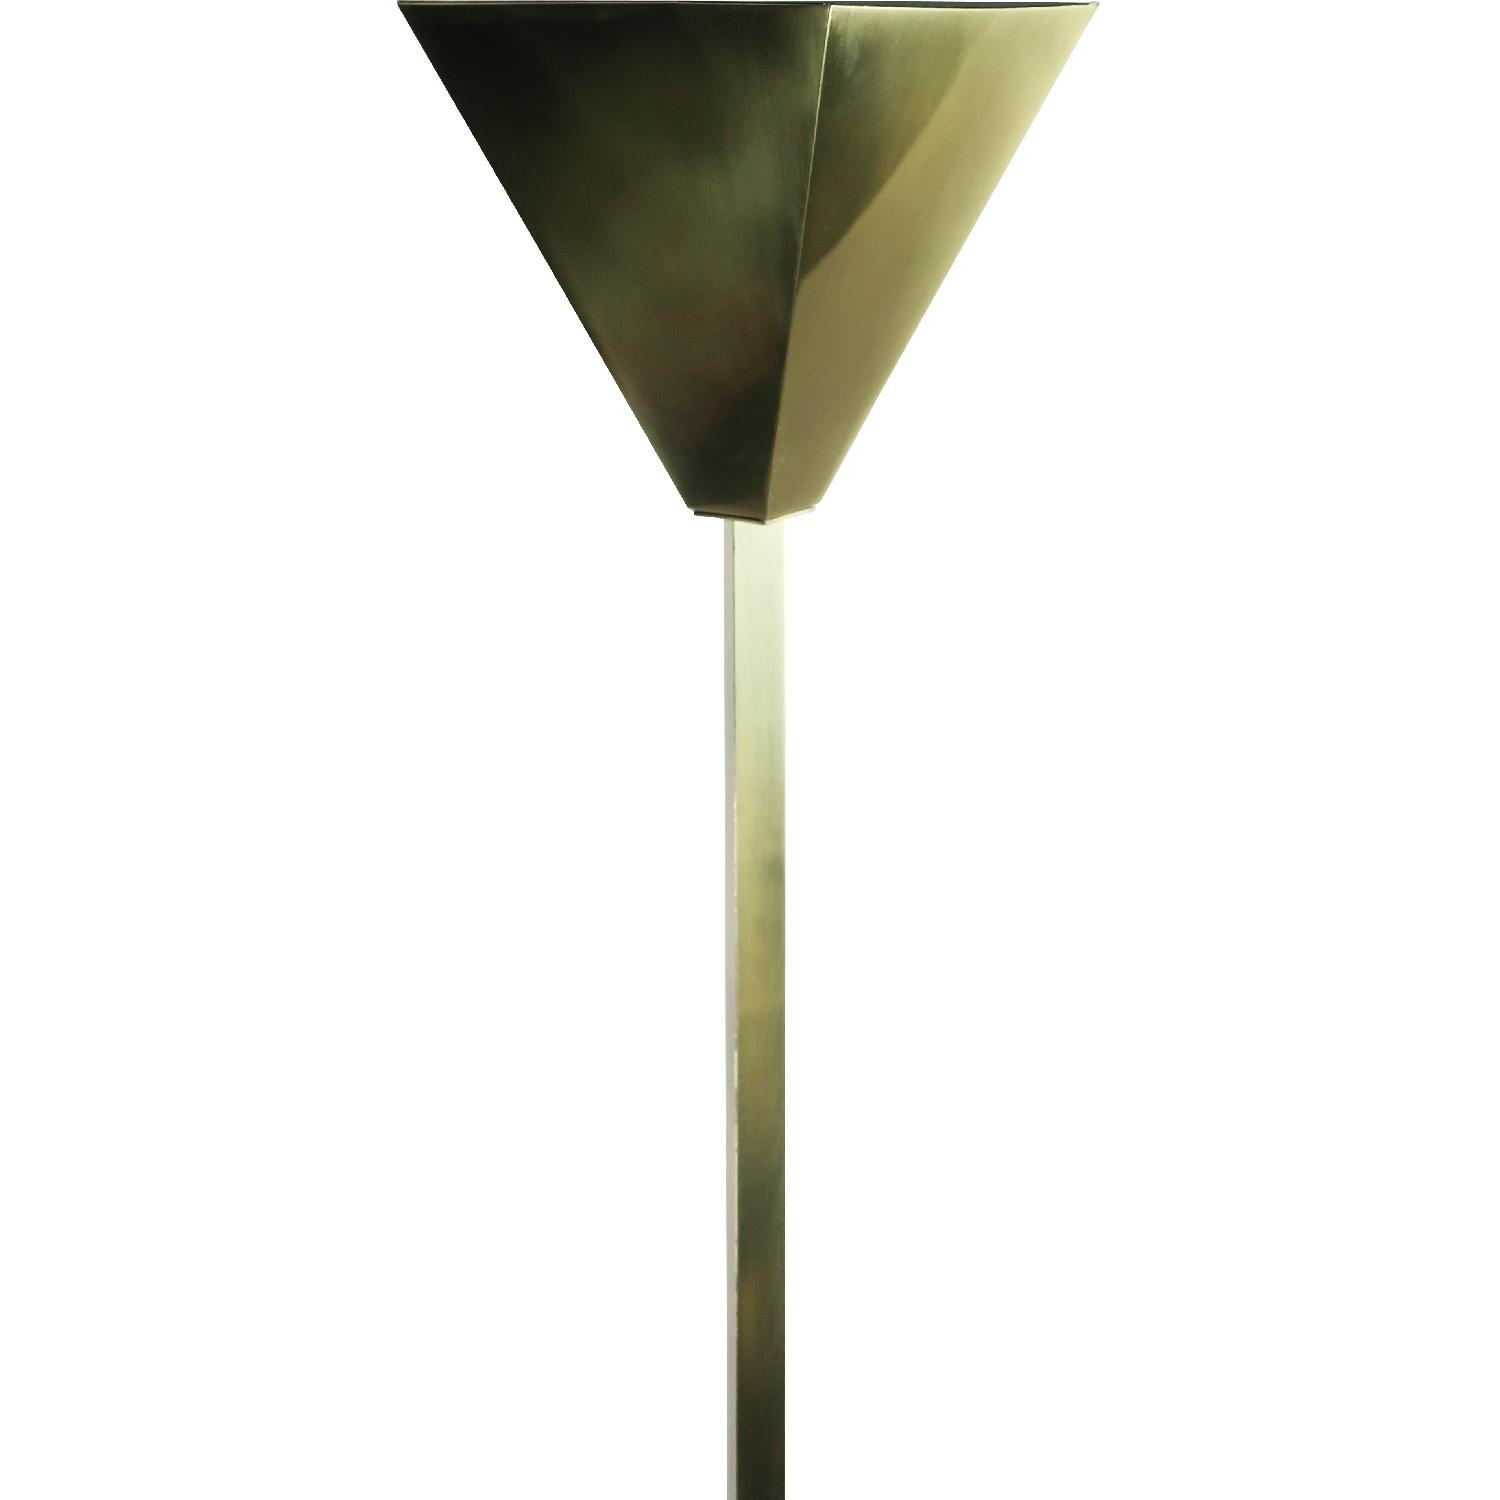 Relco Milano 1980s Brass Torchiere